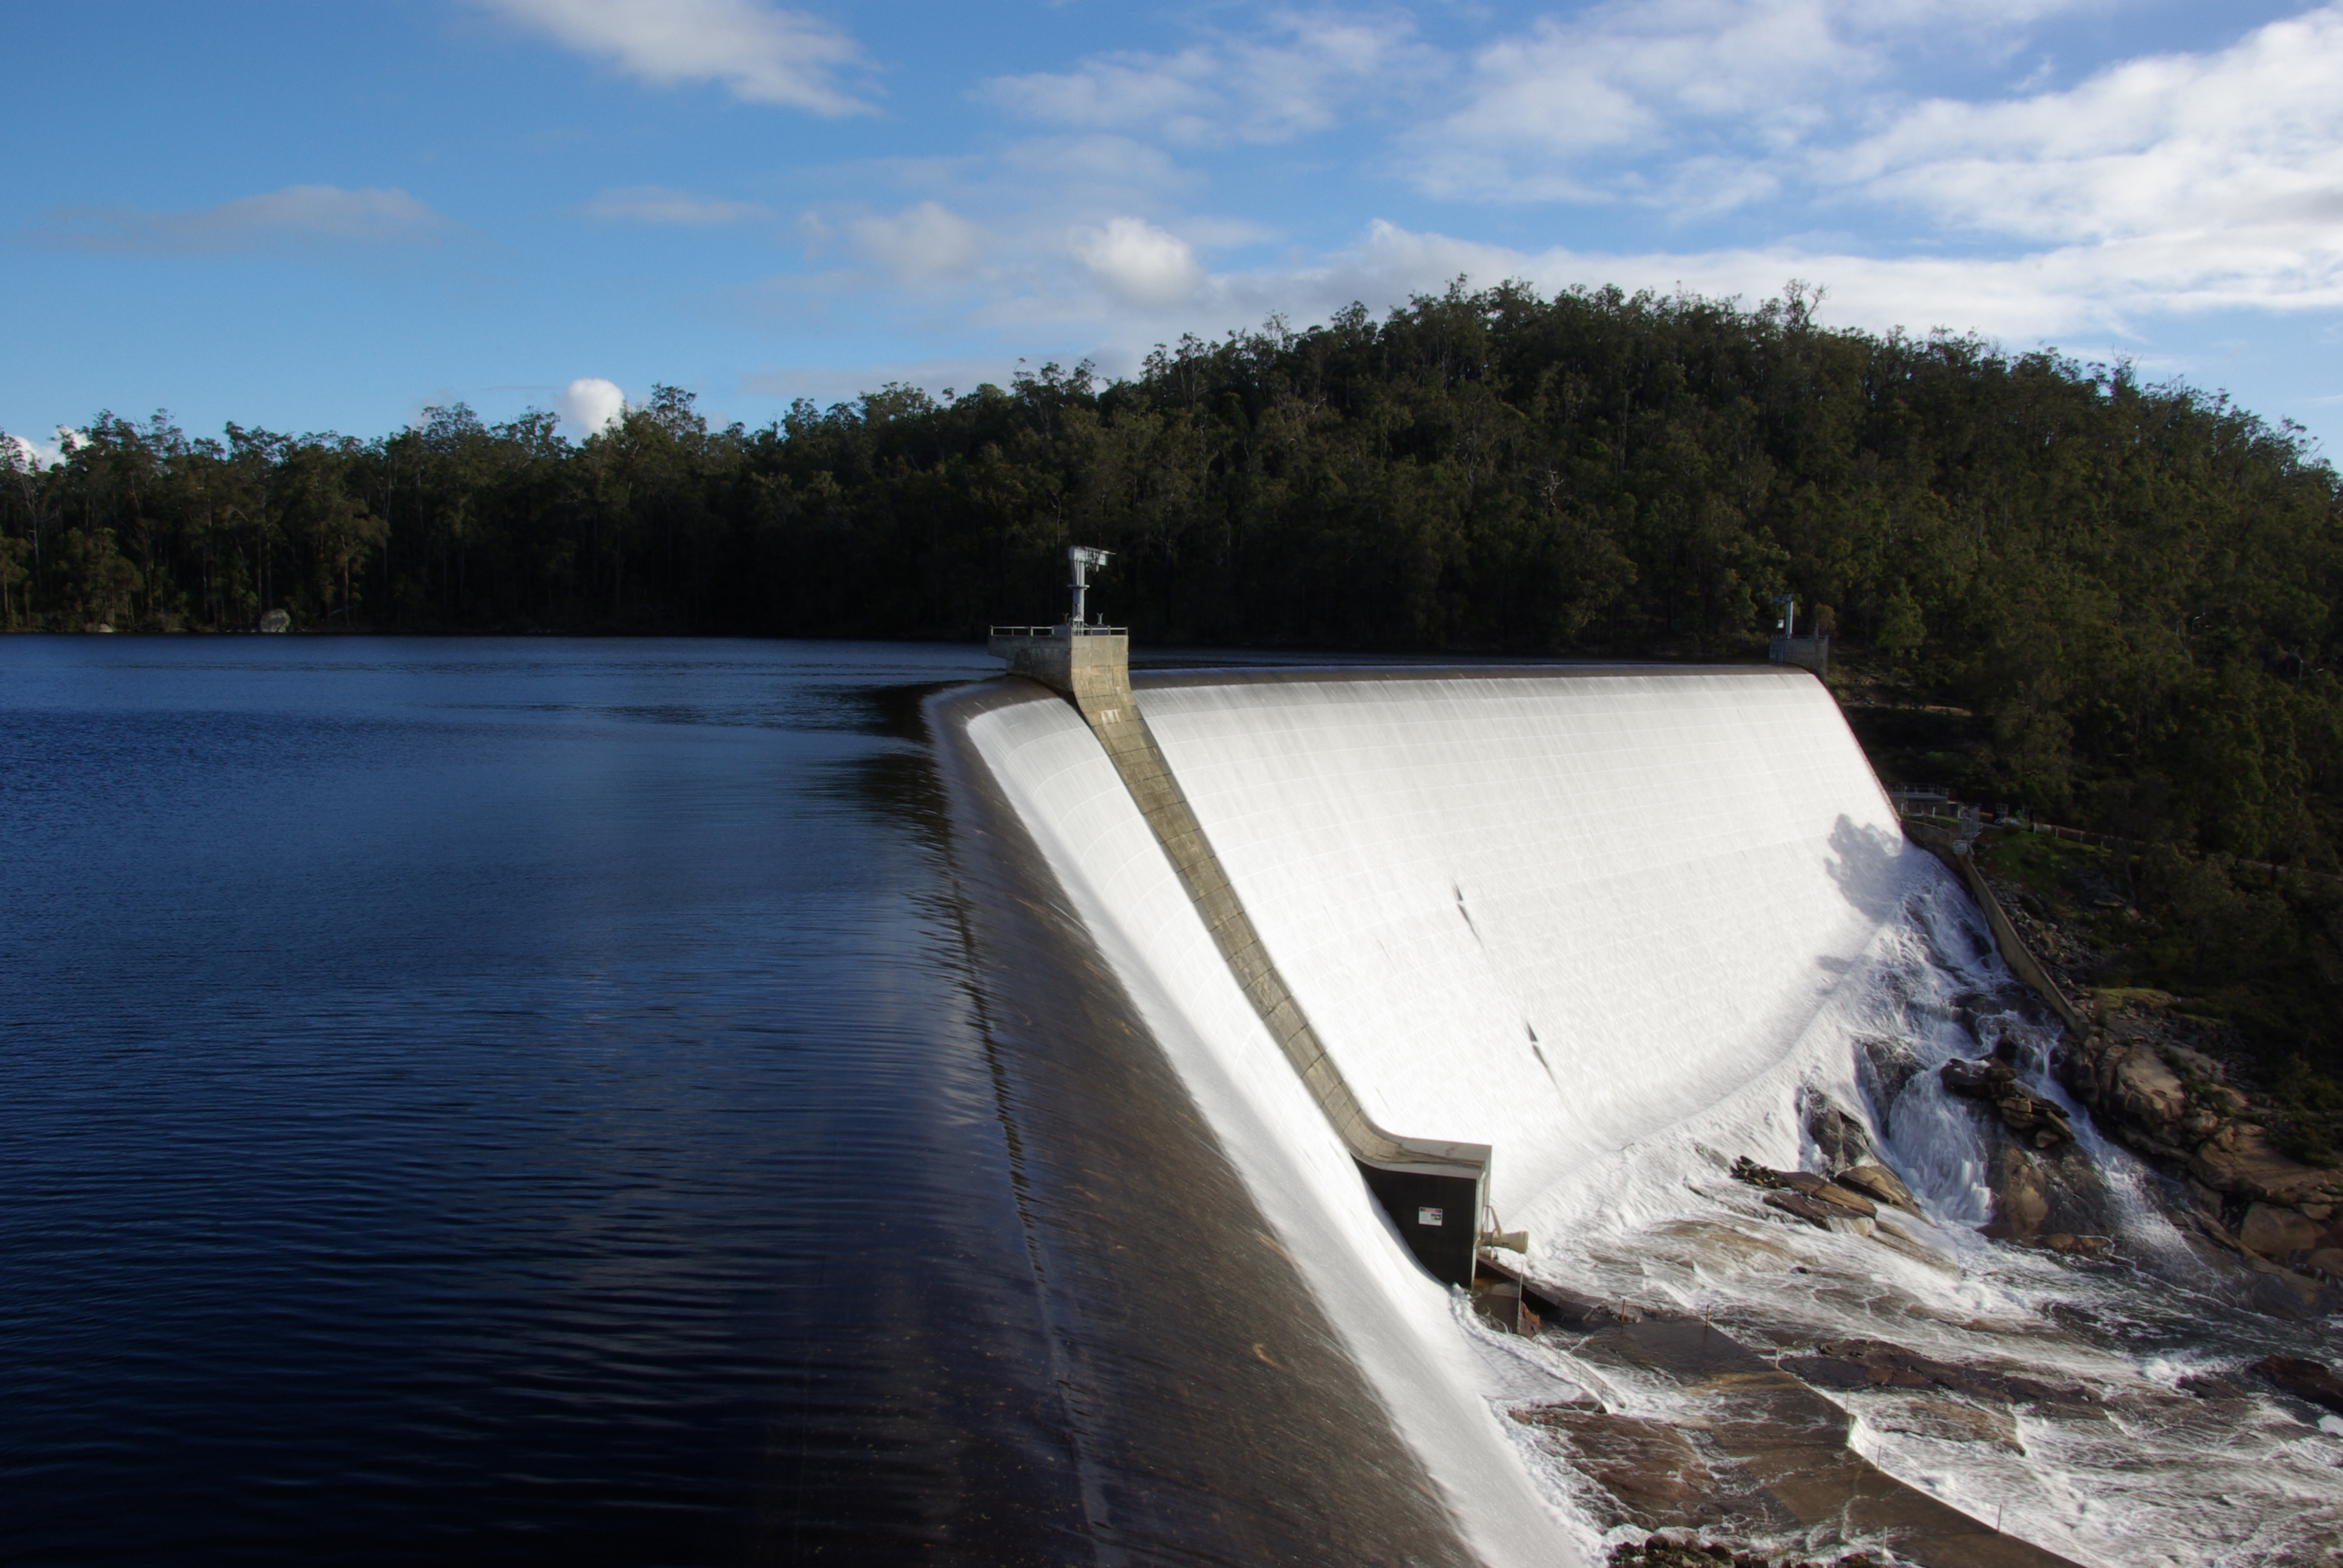 Wellington Reservoir on the Collie River